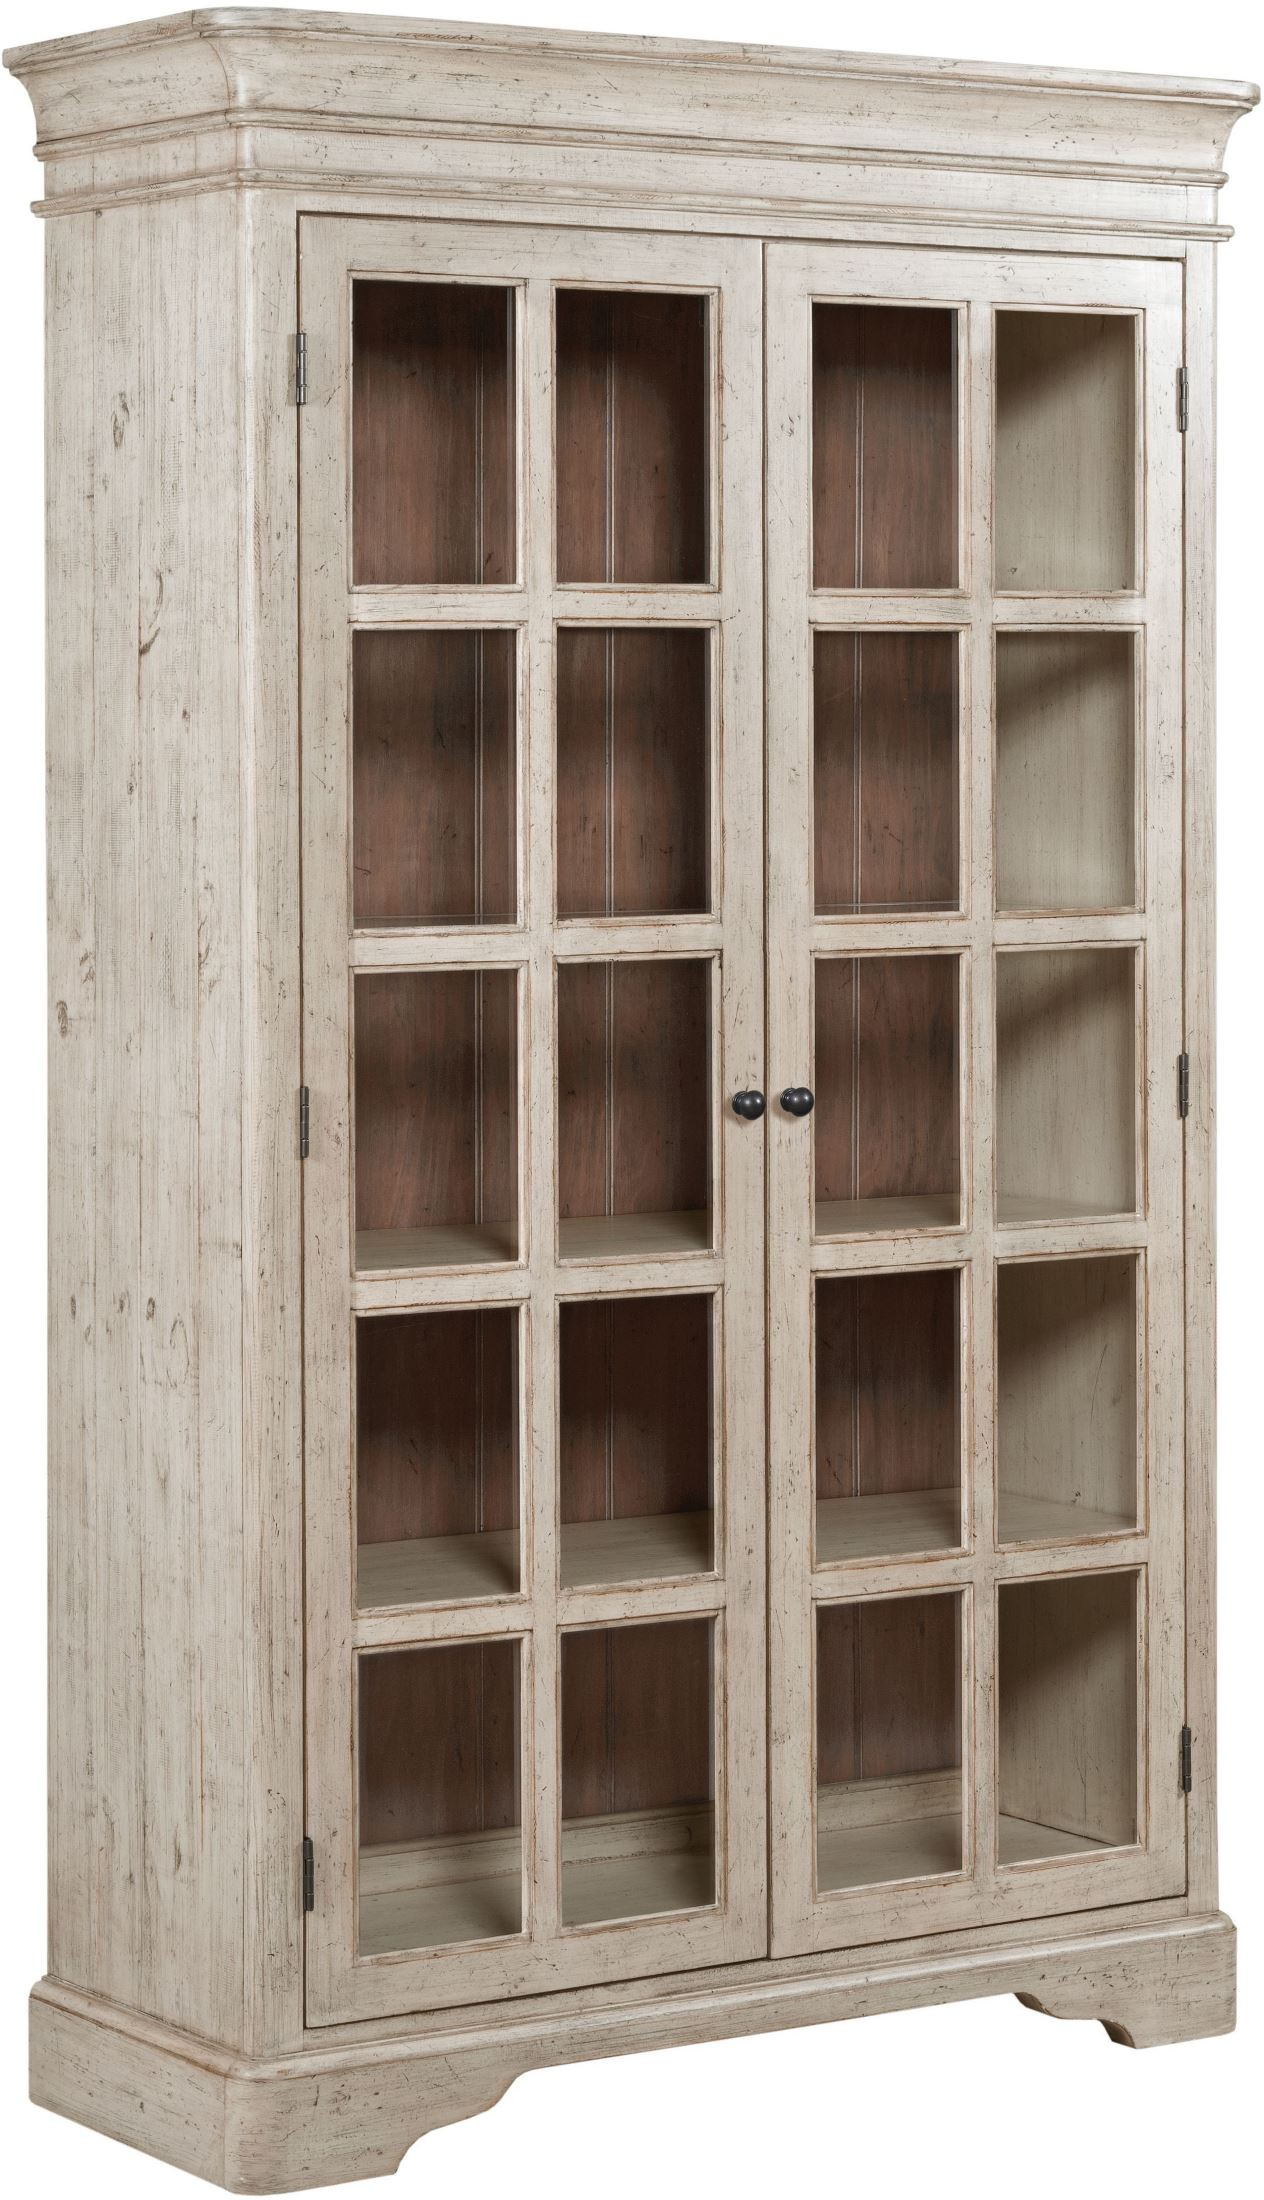 Weatherford Cornsilk Clifton China Cabinet From Kincaid | Coleman Furniture